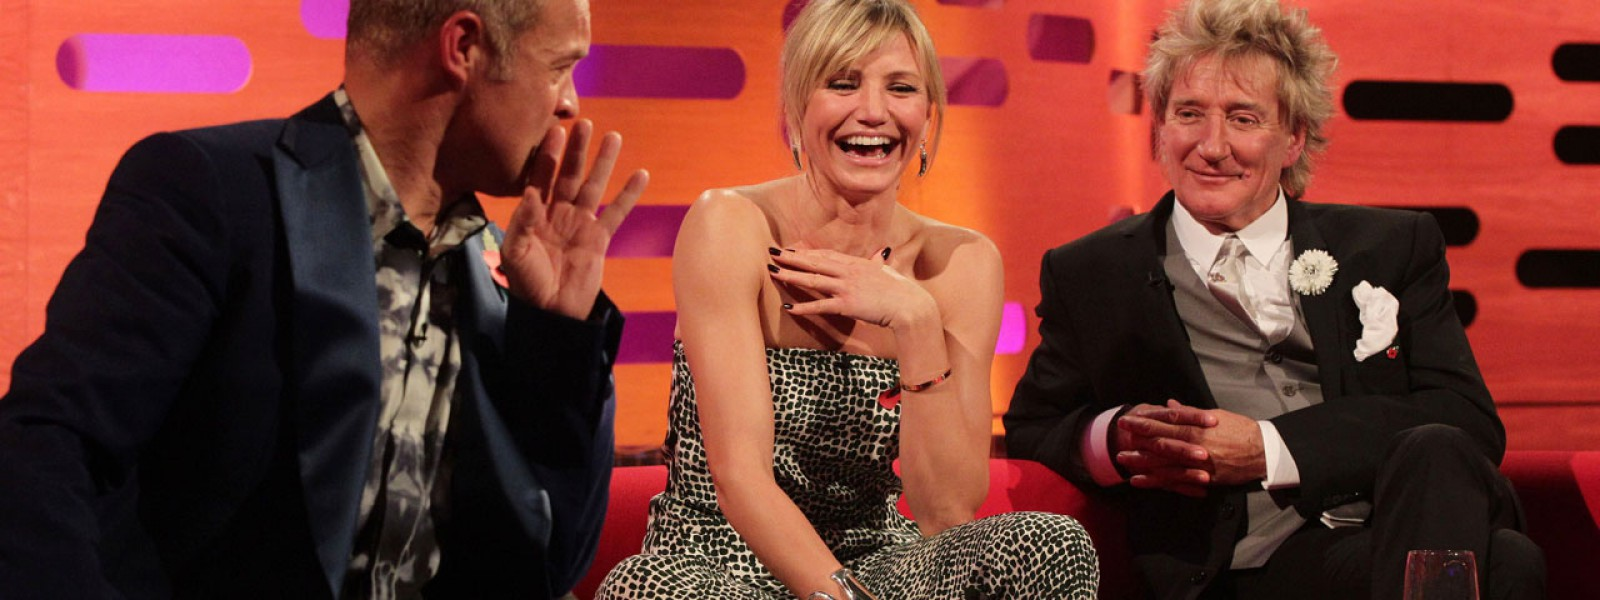 grahamnorton_photo_s12_e4_01_web